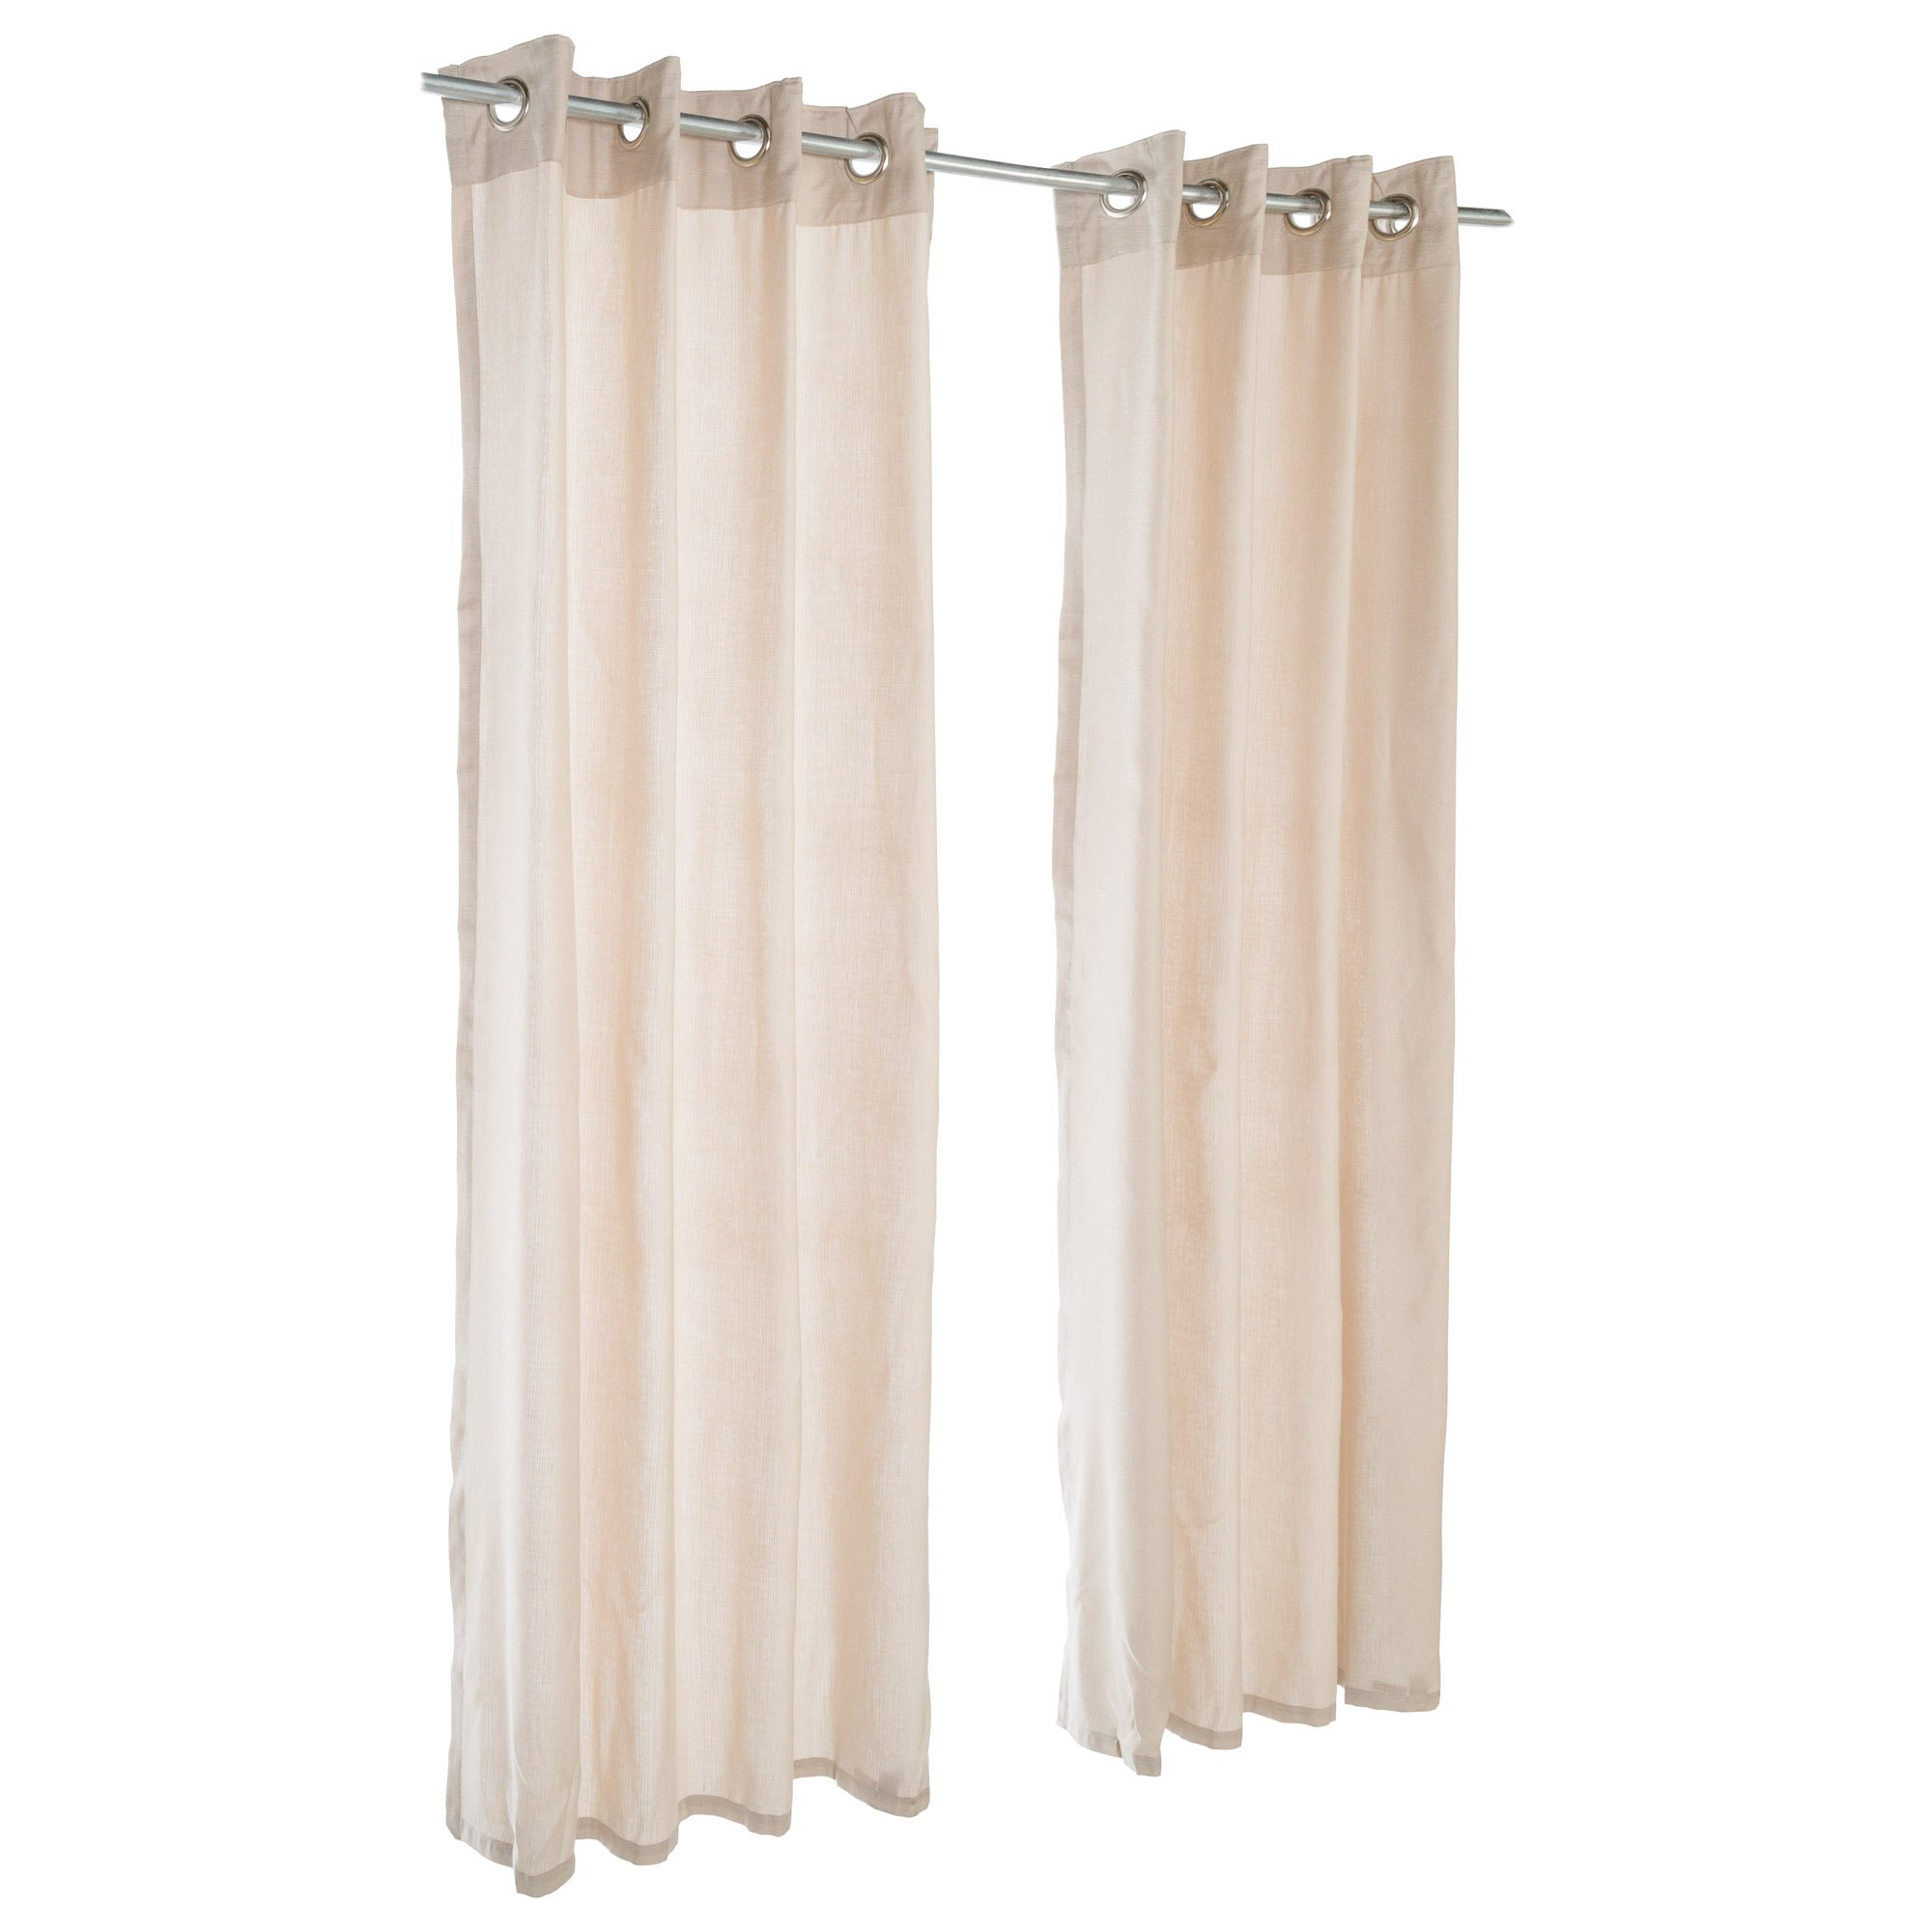 Sunbrella Outdoor Curtain with Nickel Grommets - Wren (SHEER) (50 in. W x 120 in. L)